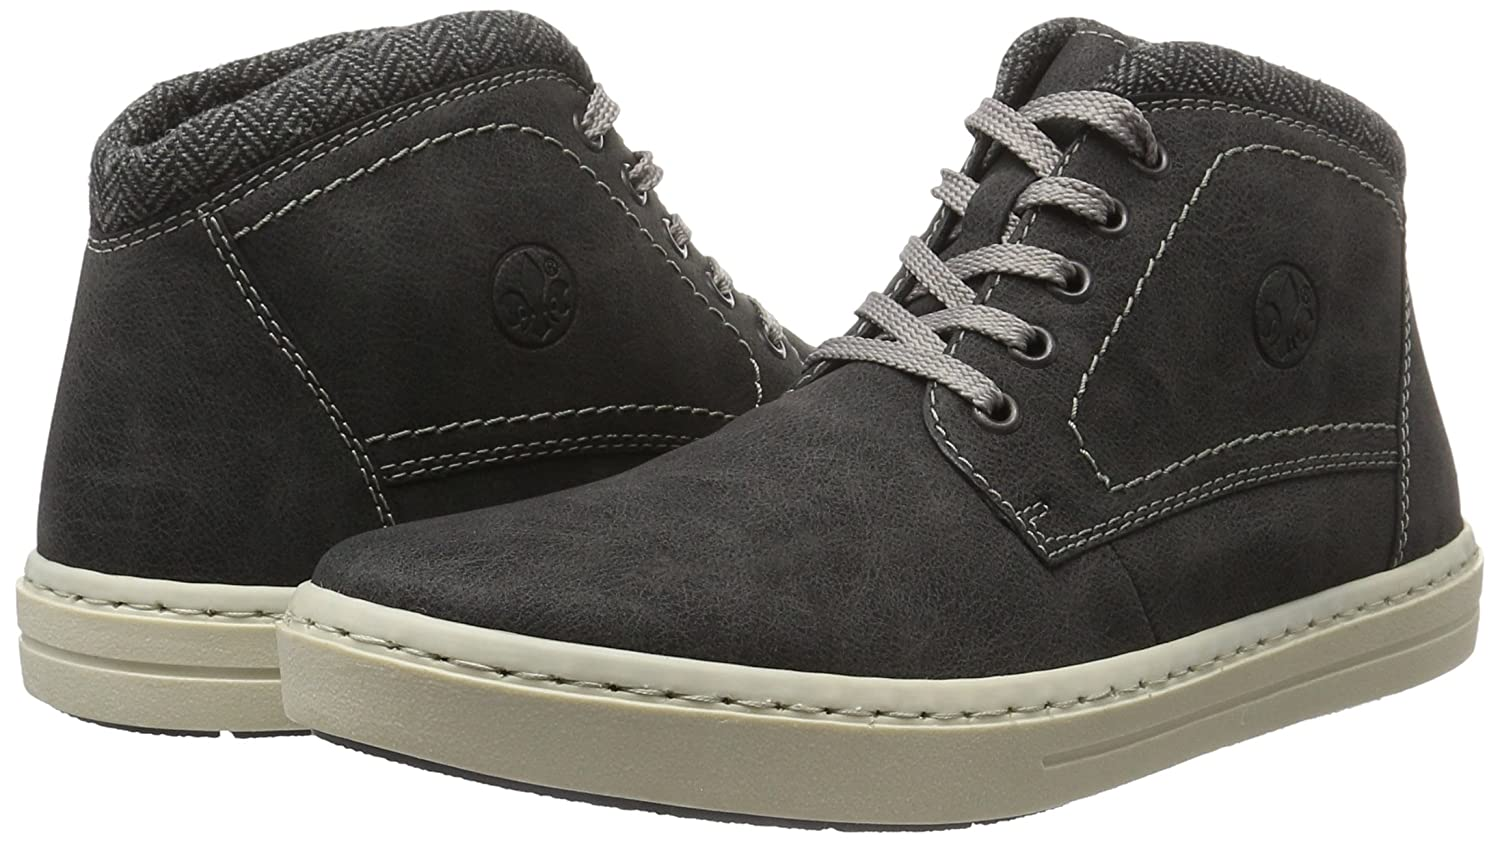 Mens 30932 Hi-Top Sneakers, Grey, 7.5 UK Rieker